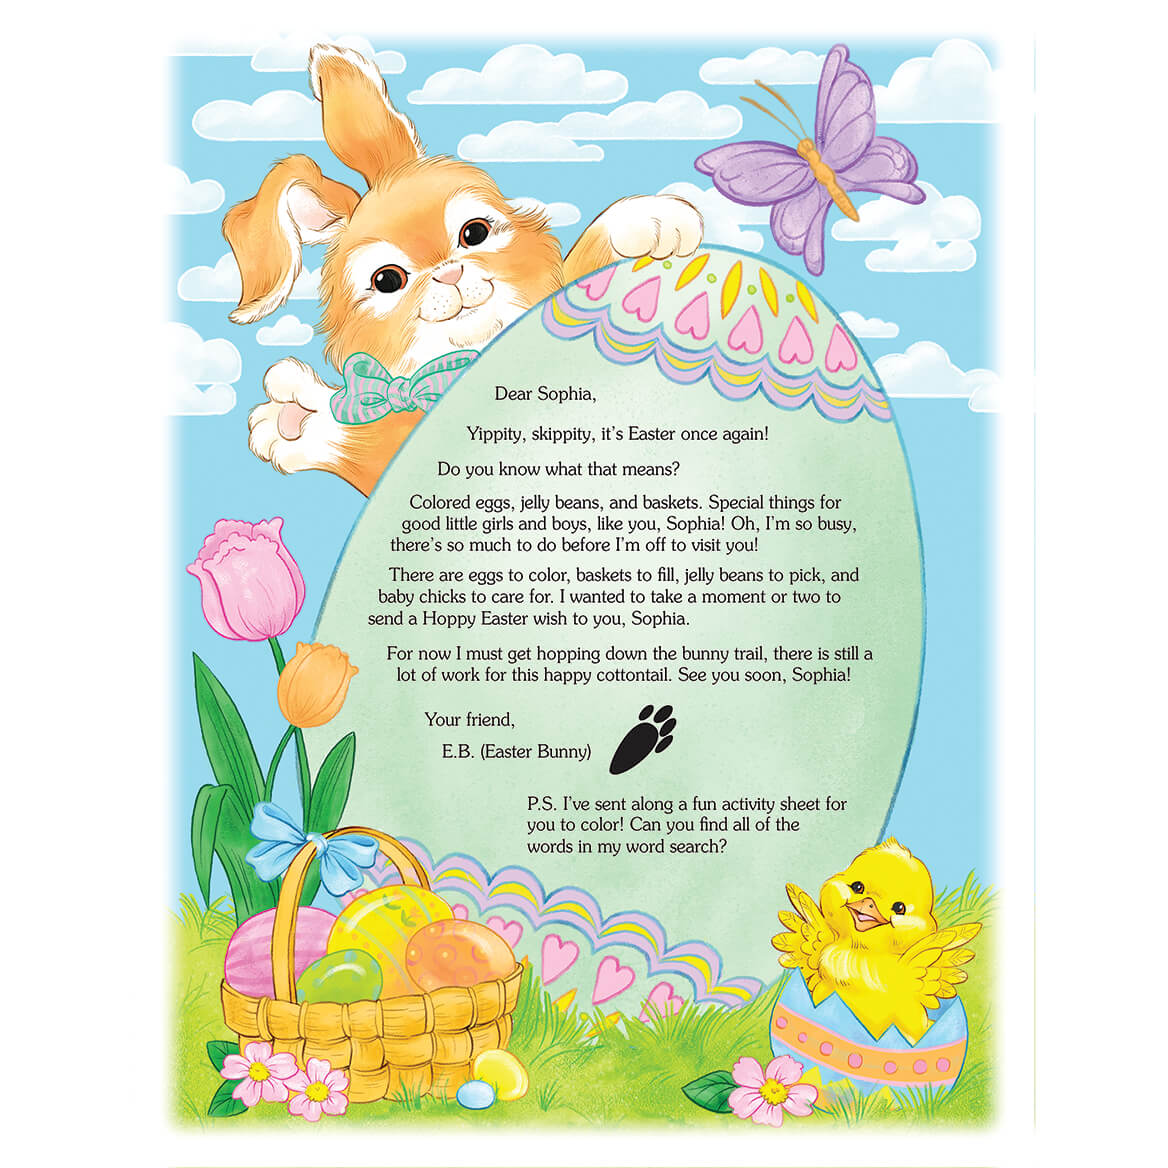 2021 Letter and Sheet of Stickers Gift From Easter Bunny-361913